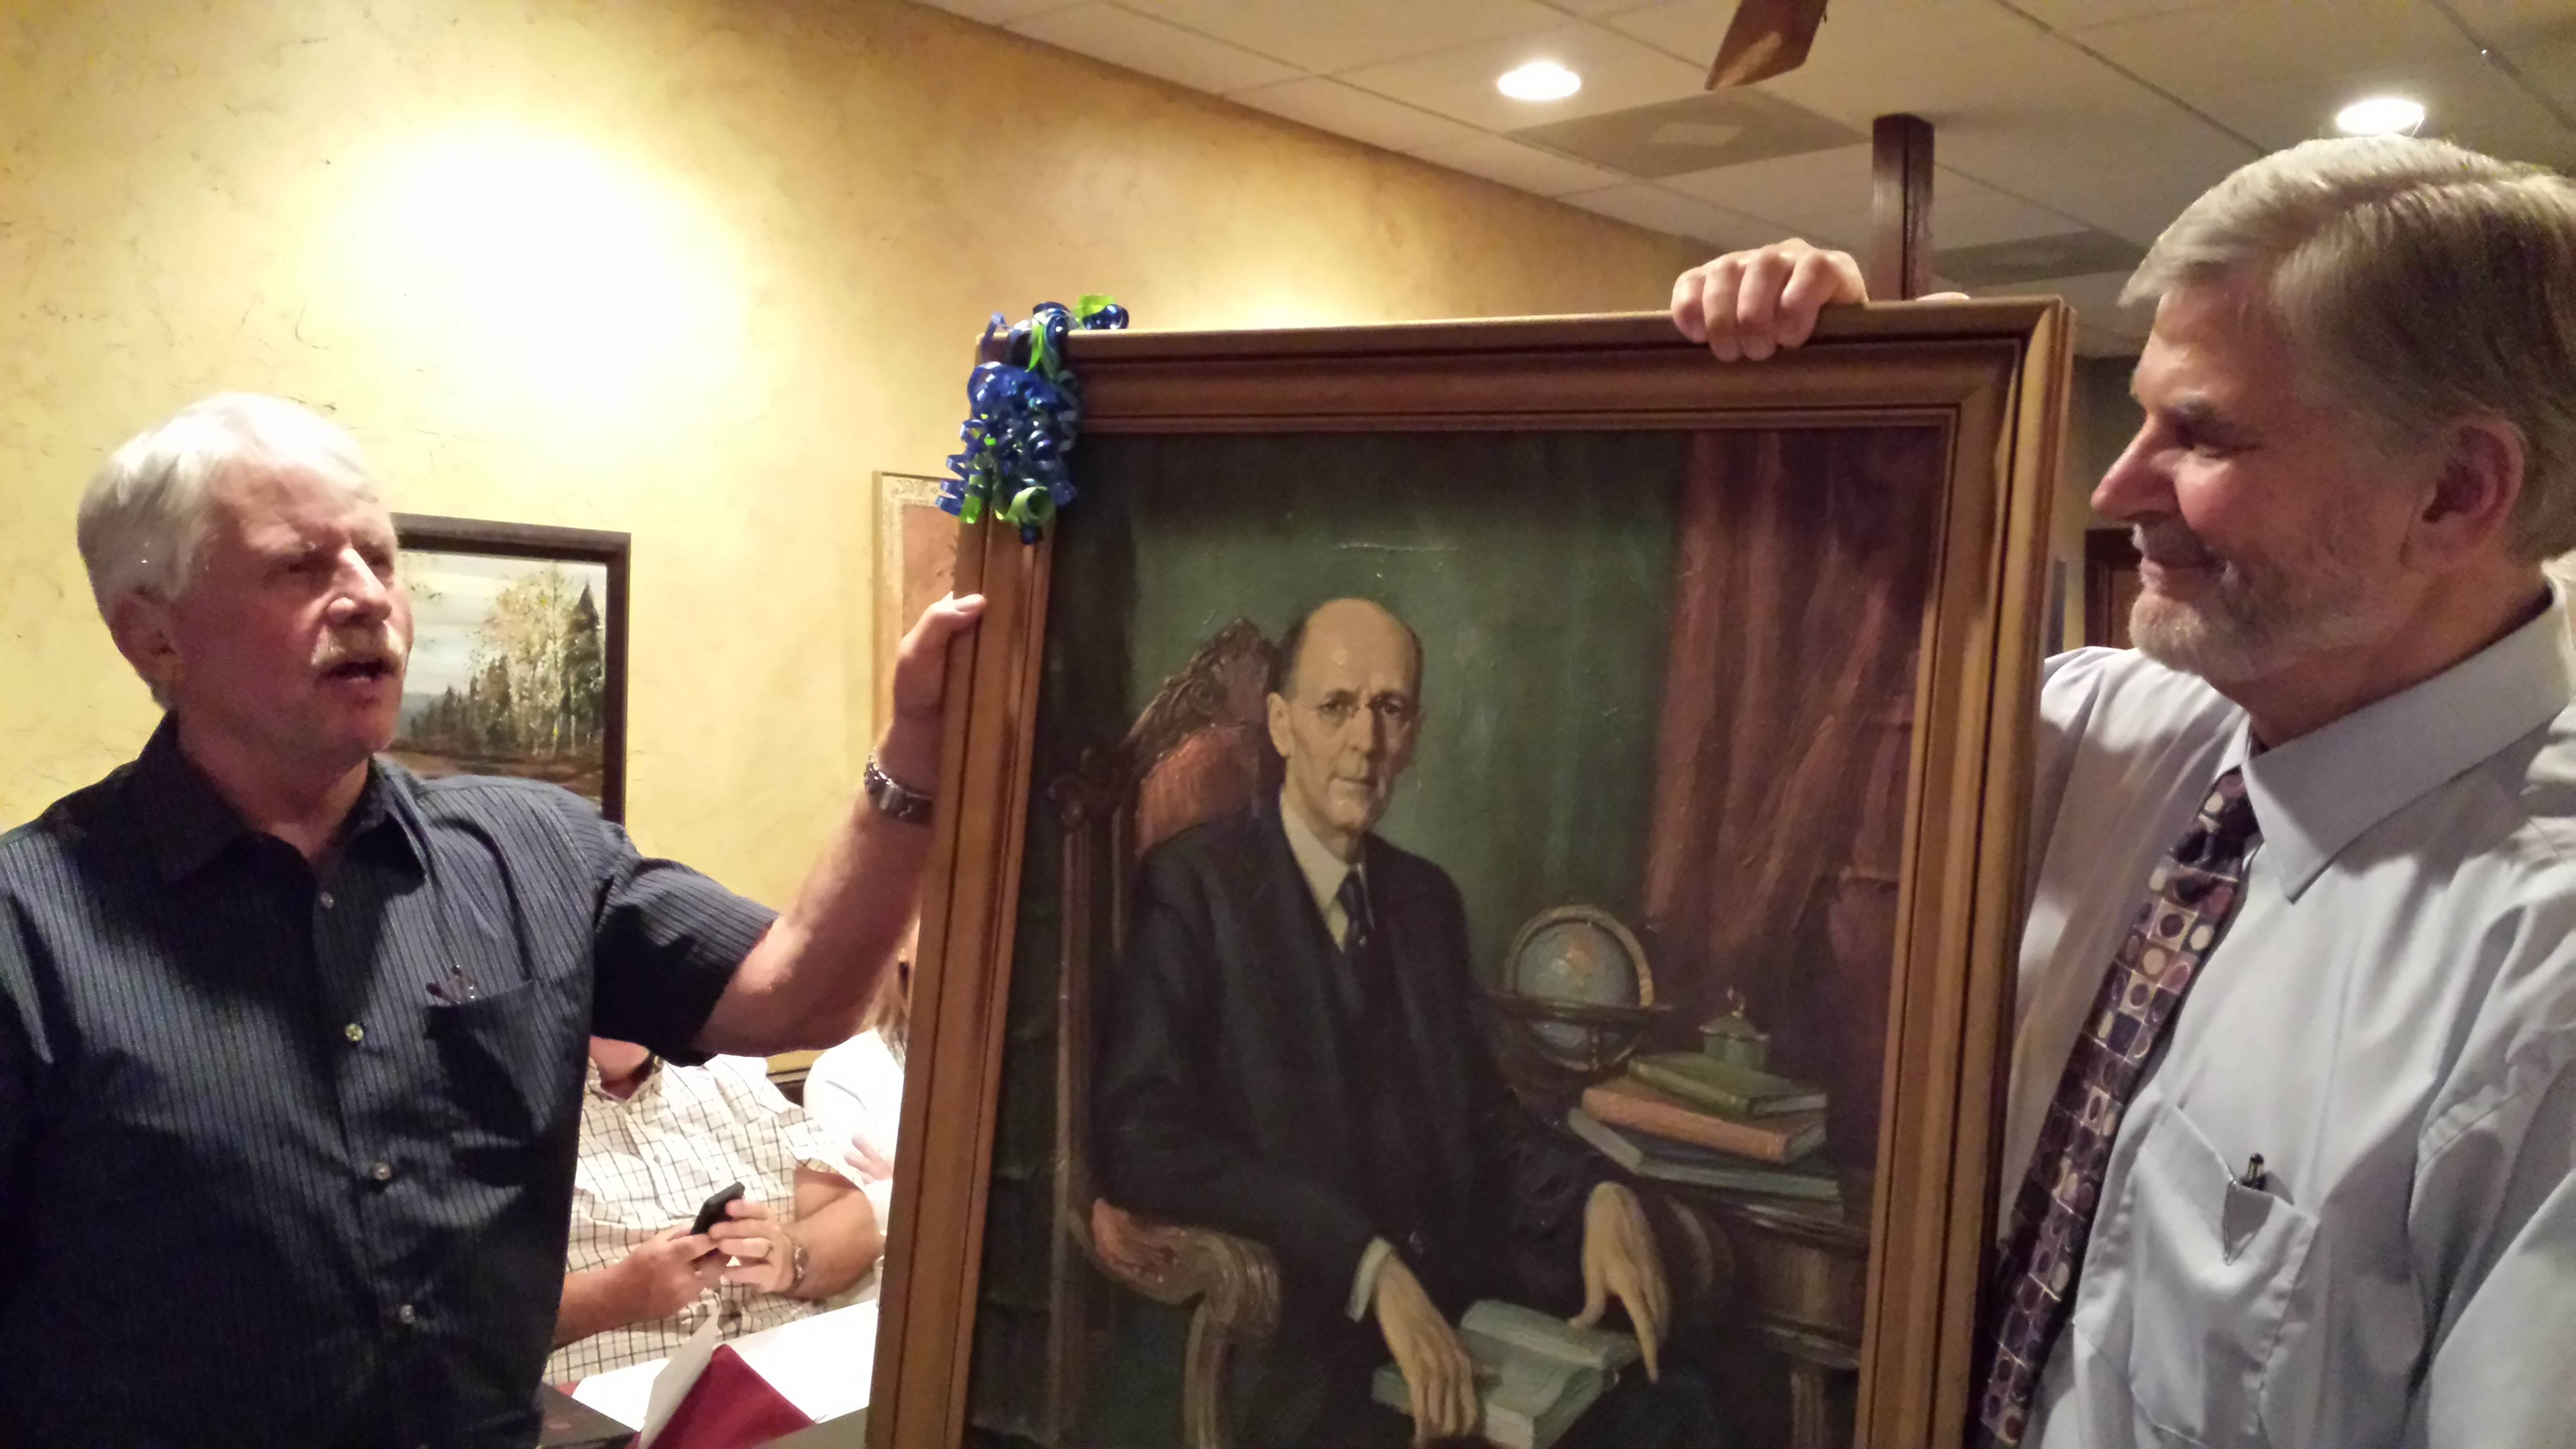 Jim Menzer, left, outgoing president of the Rotary Club of Antioch, presents a portrait of Paul Harris, the Chicago attorney who founded Rotary International in 1905, to new president Bob Deiss.